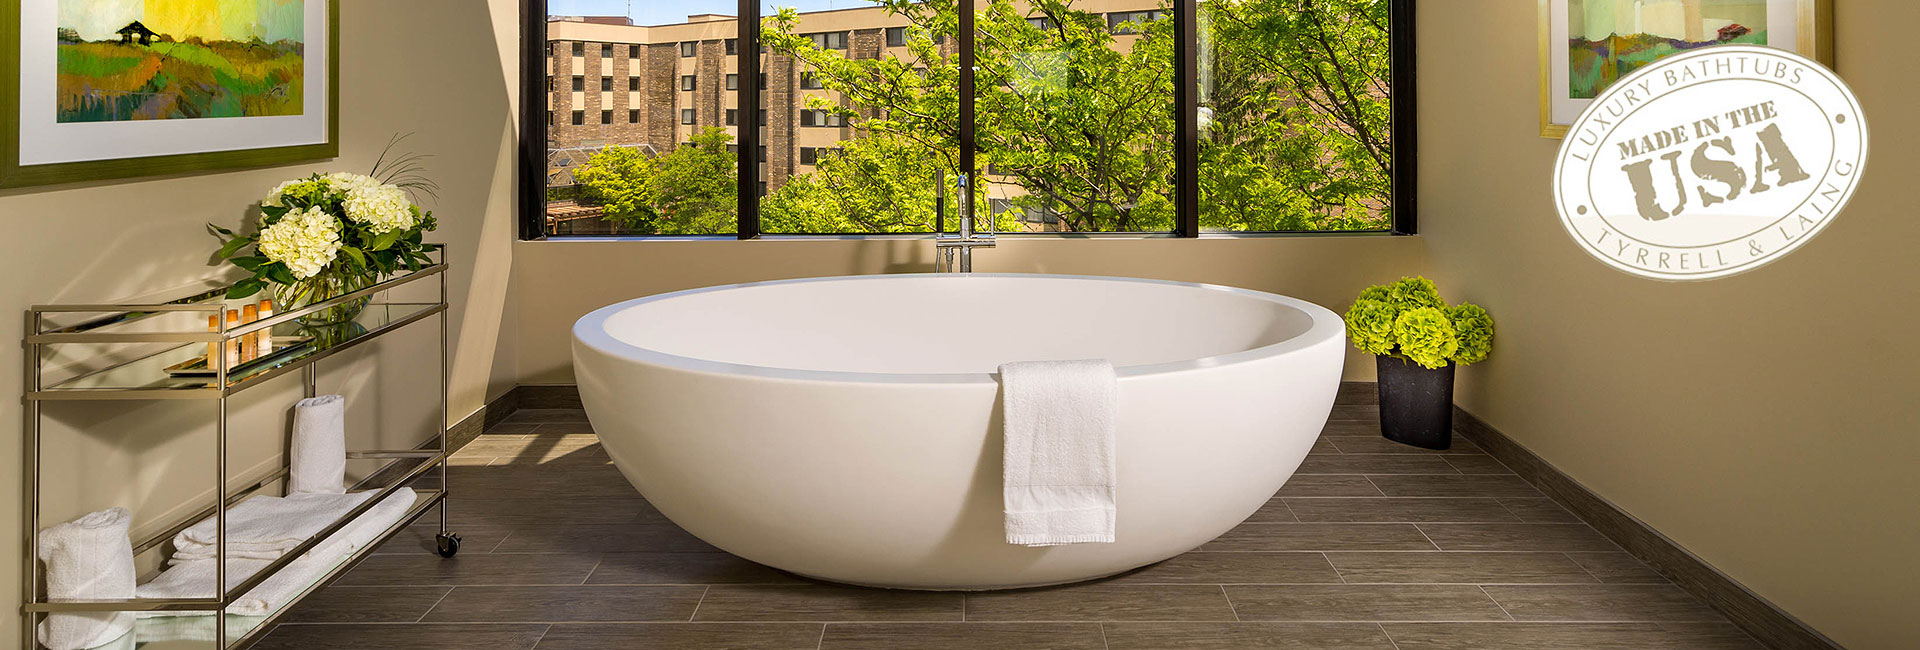 Large freestanding luxury bathtub | Tyrrell & Laing